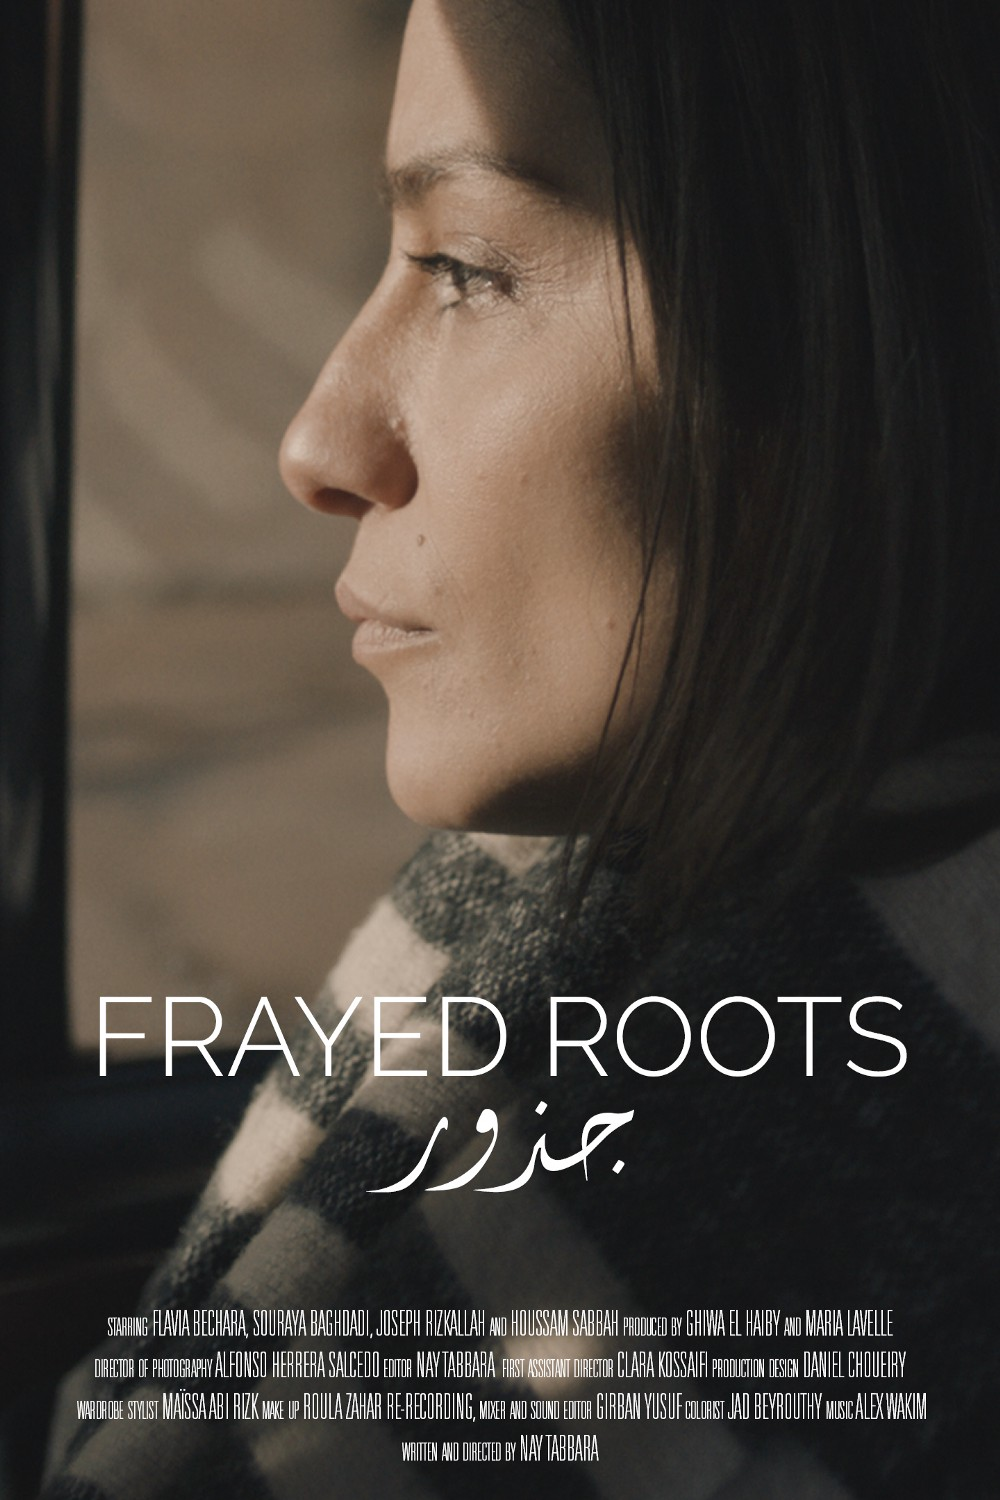 """The profile of a woman with """"Frayed Roots"""" overlaying the image."""